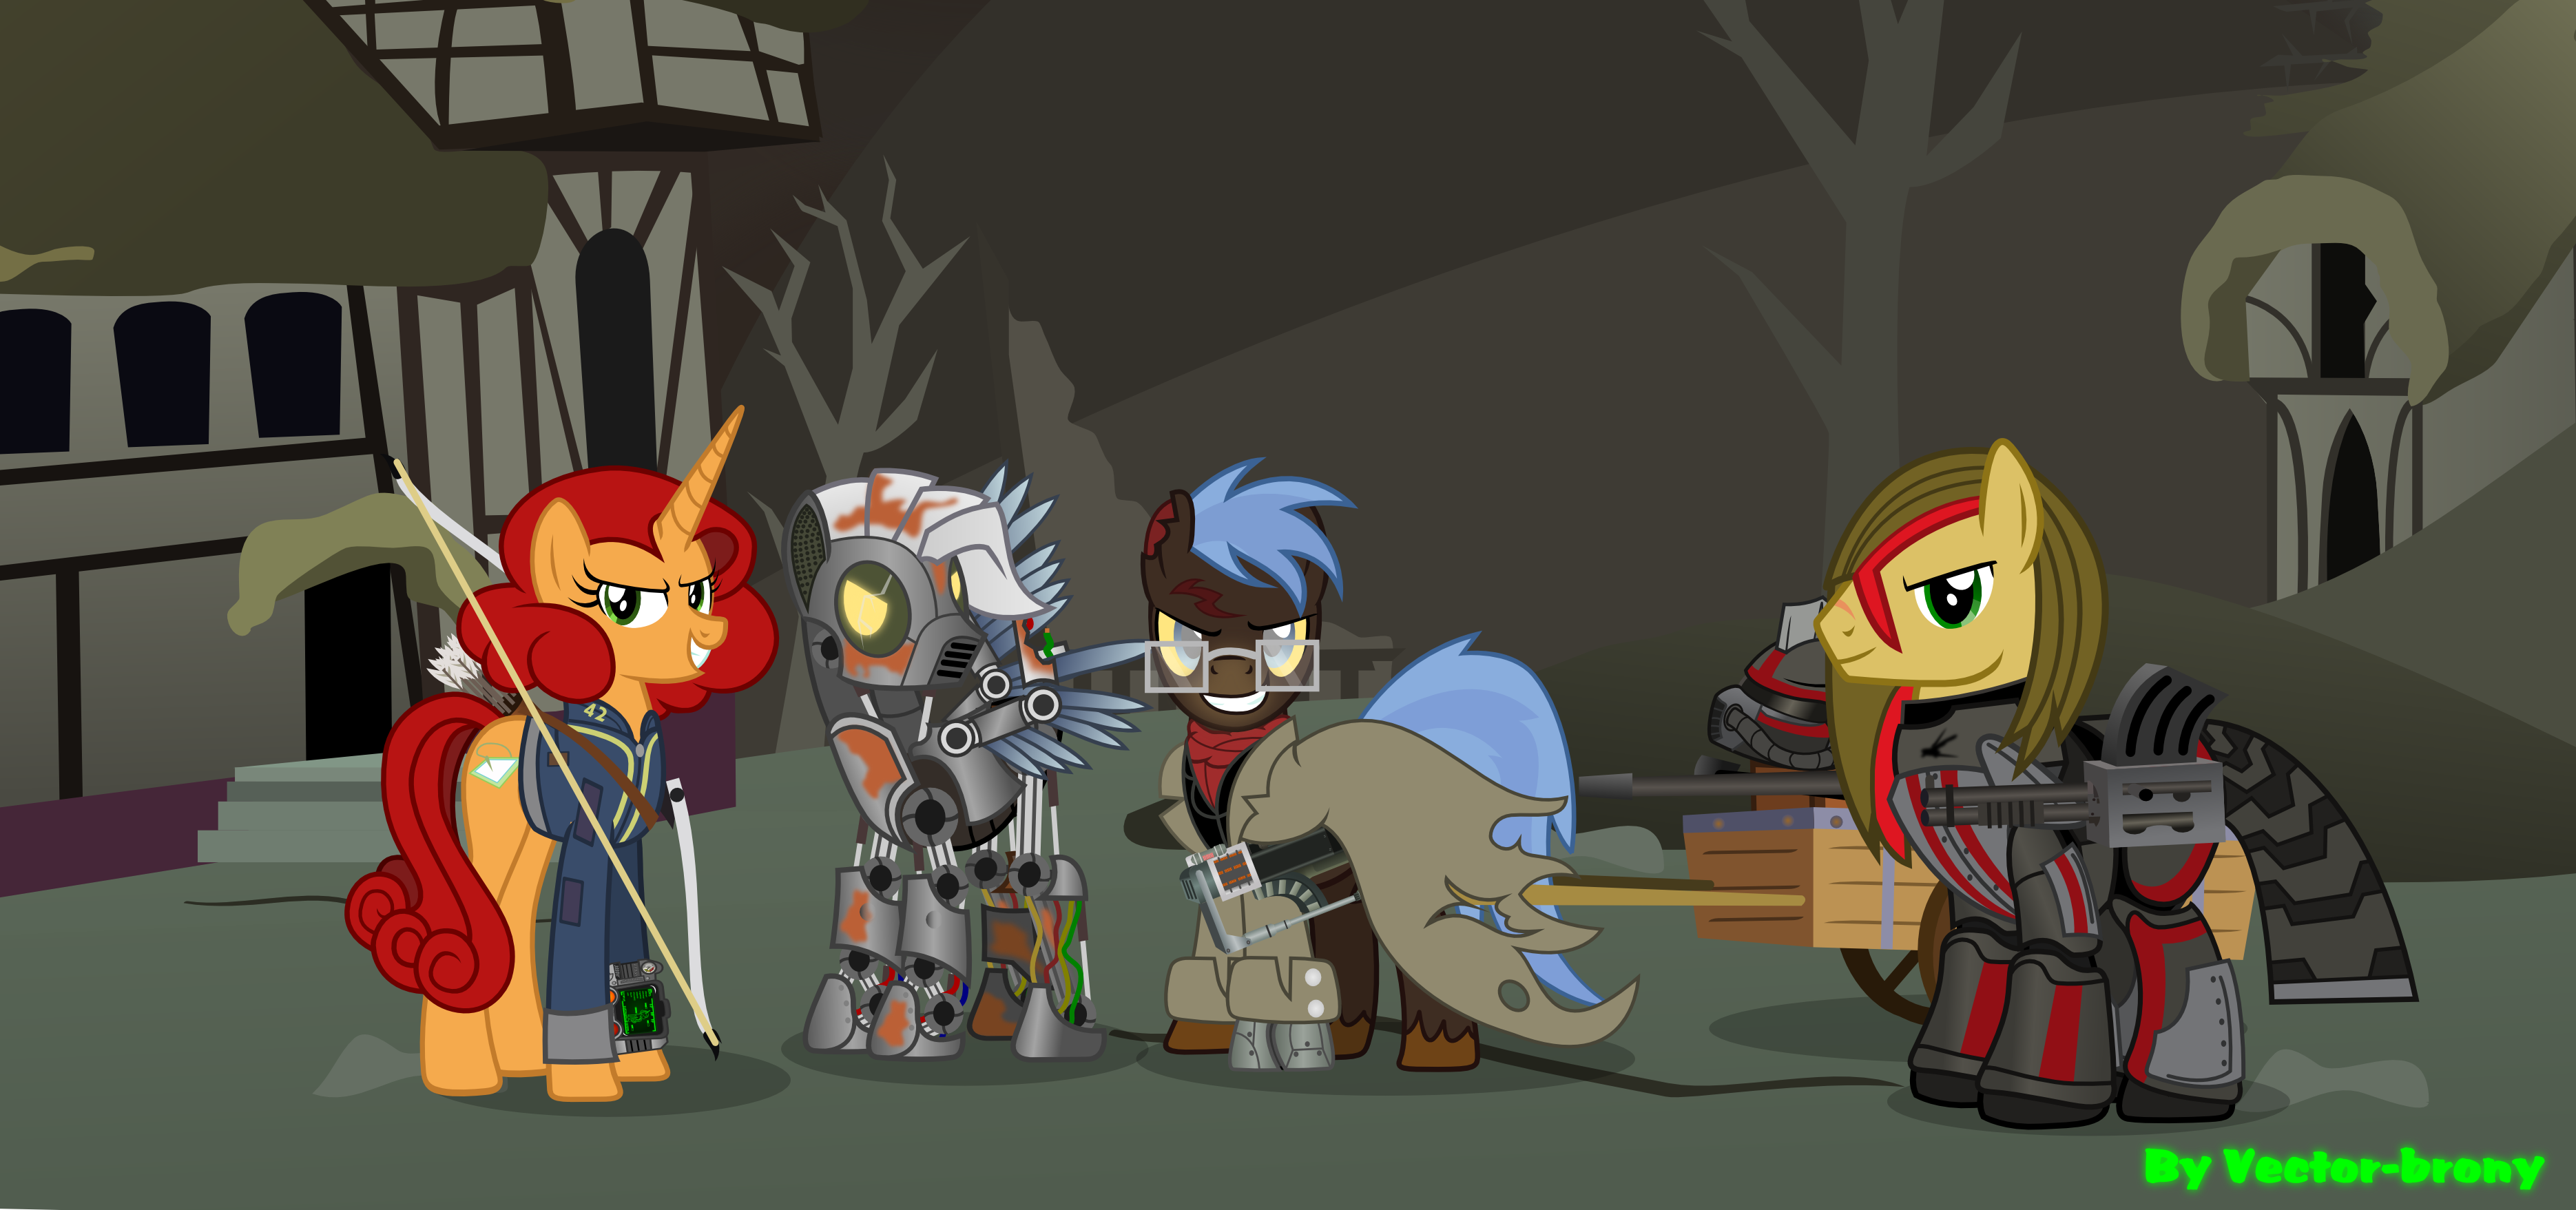 Fallout Equestria Team AnY By Vector-Brony On DeviantArt